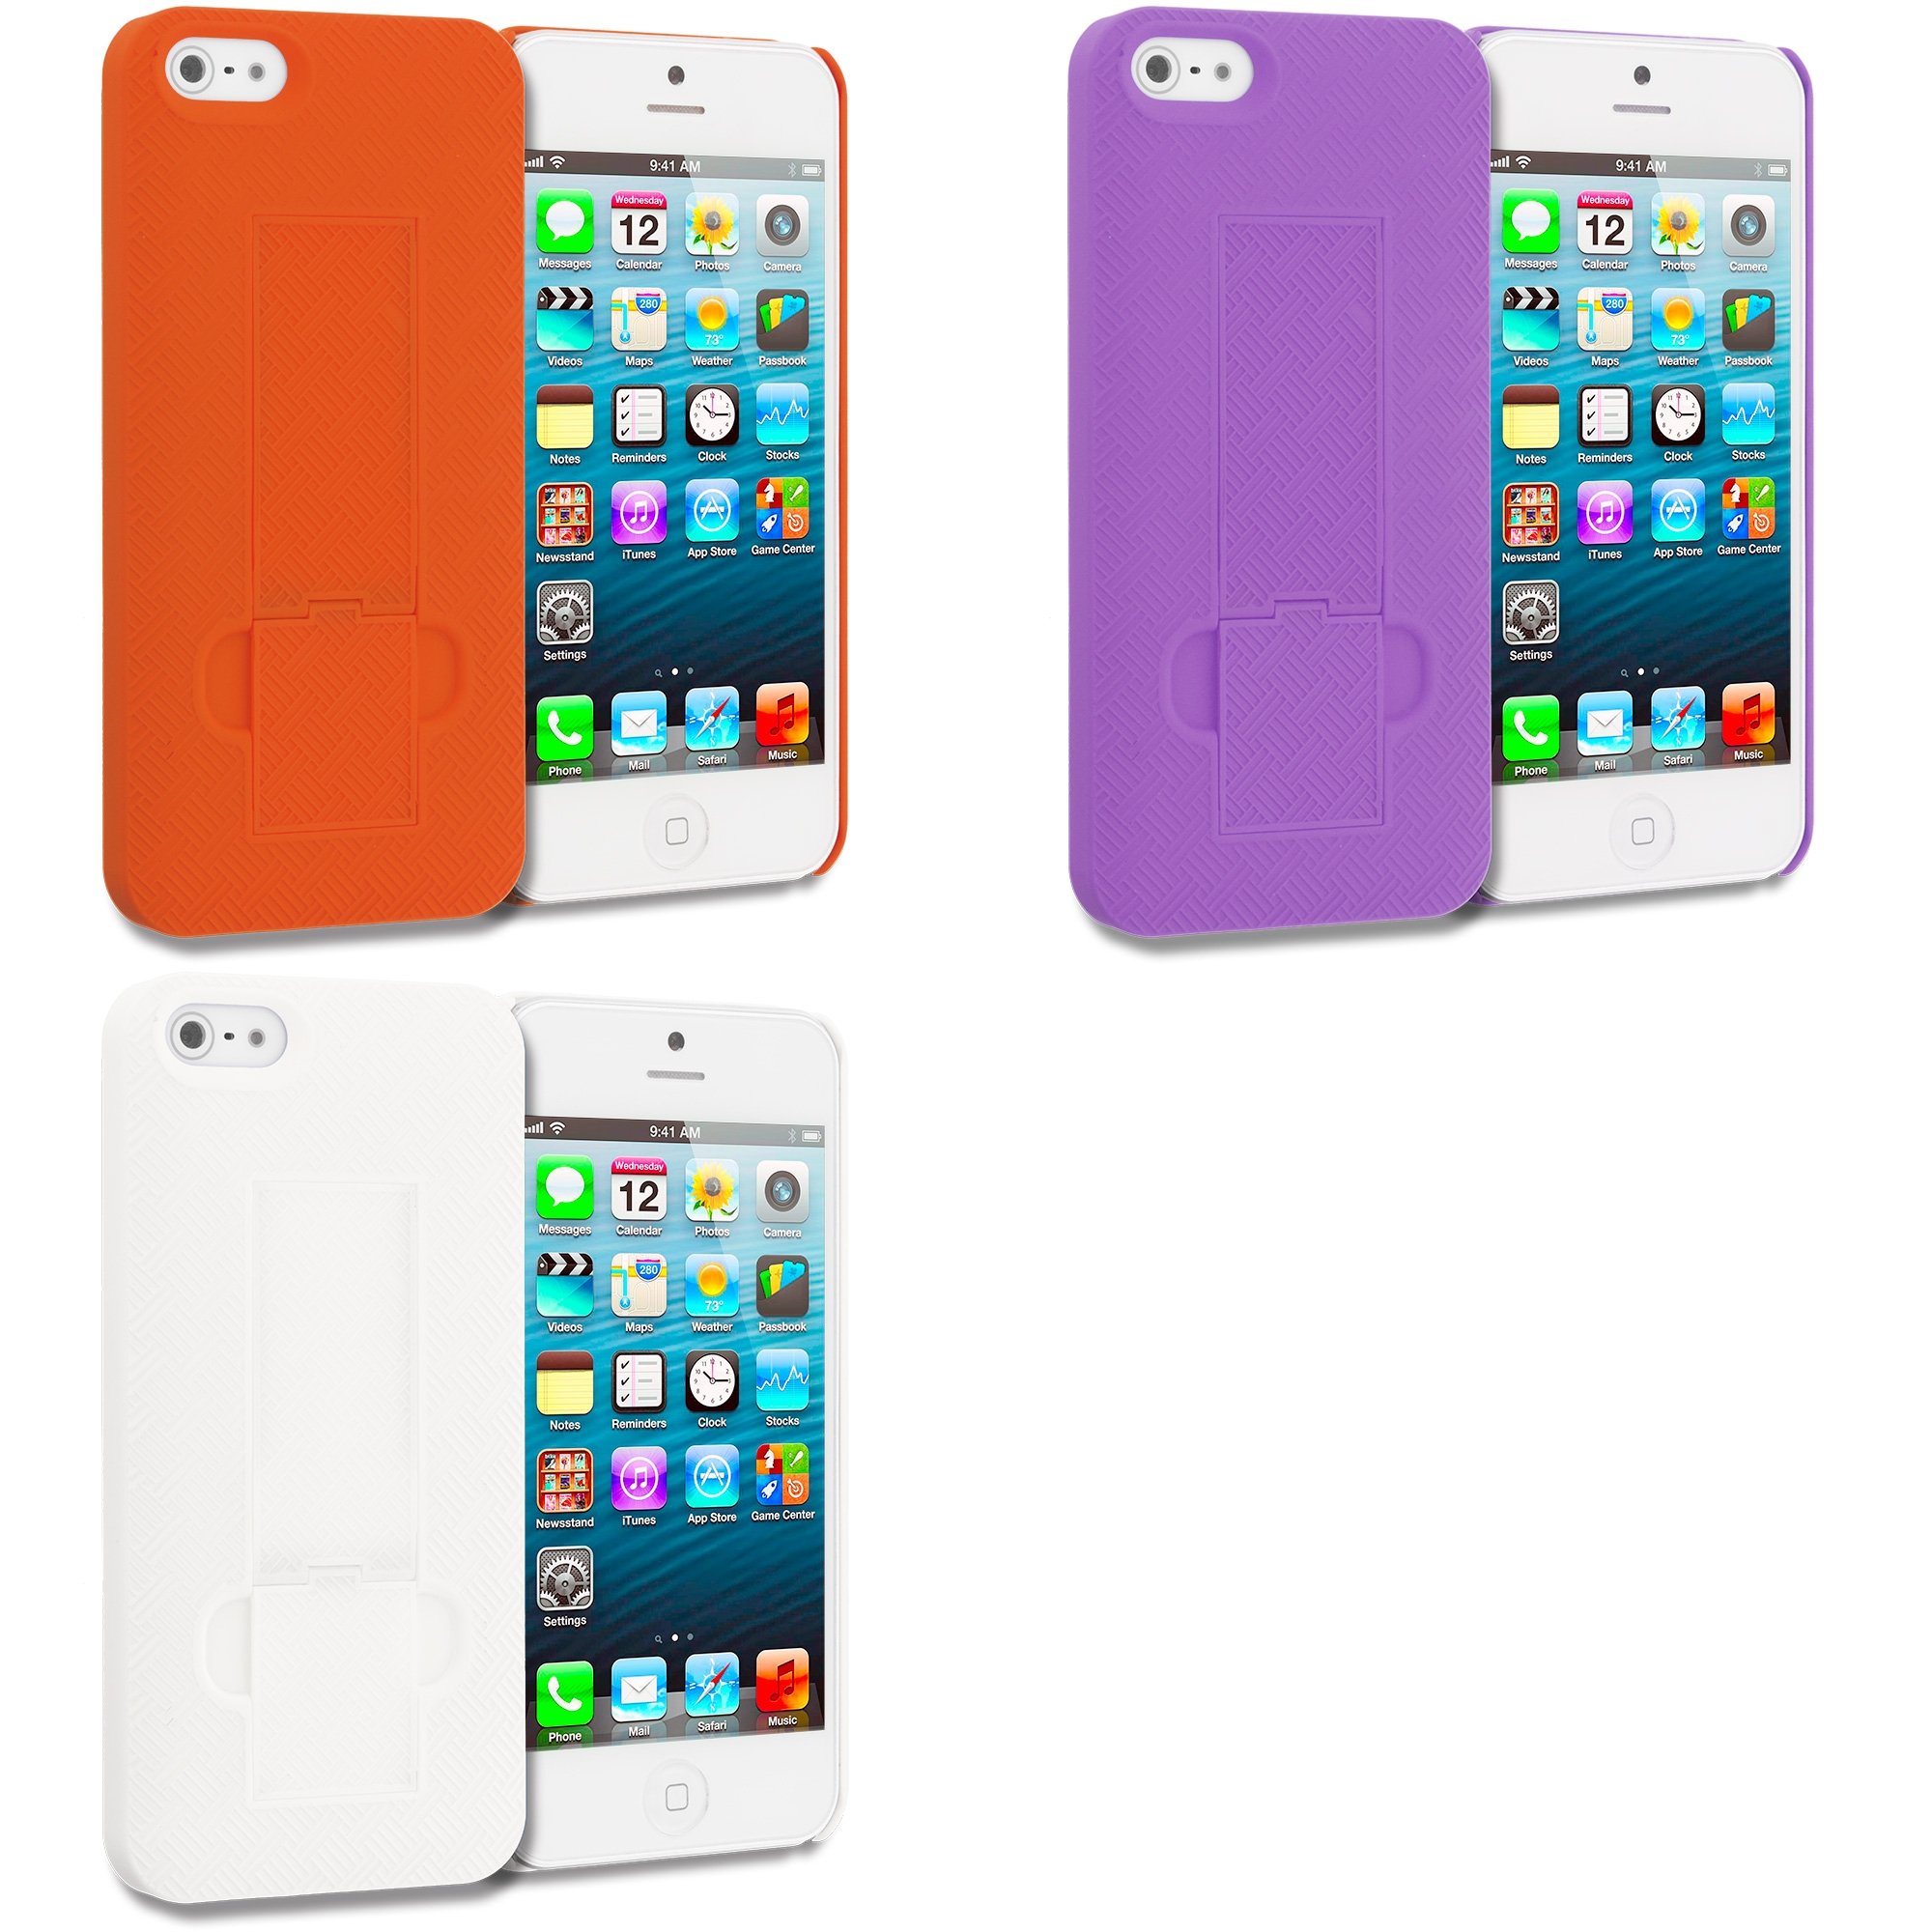 Apple iPhone 5/5S/SE Combo Pack : Orange Grid Texture w/ Stand Hard Rubberized Back Cover Case